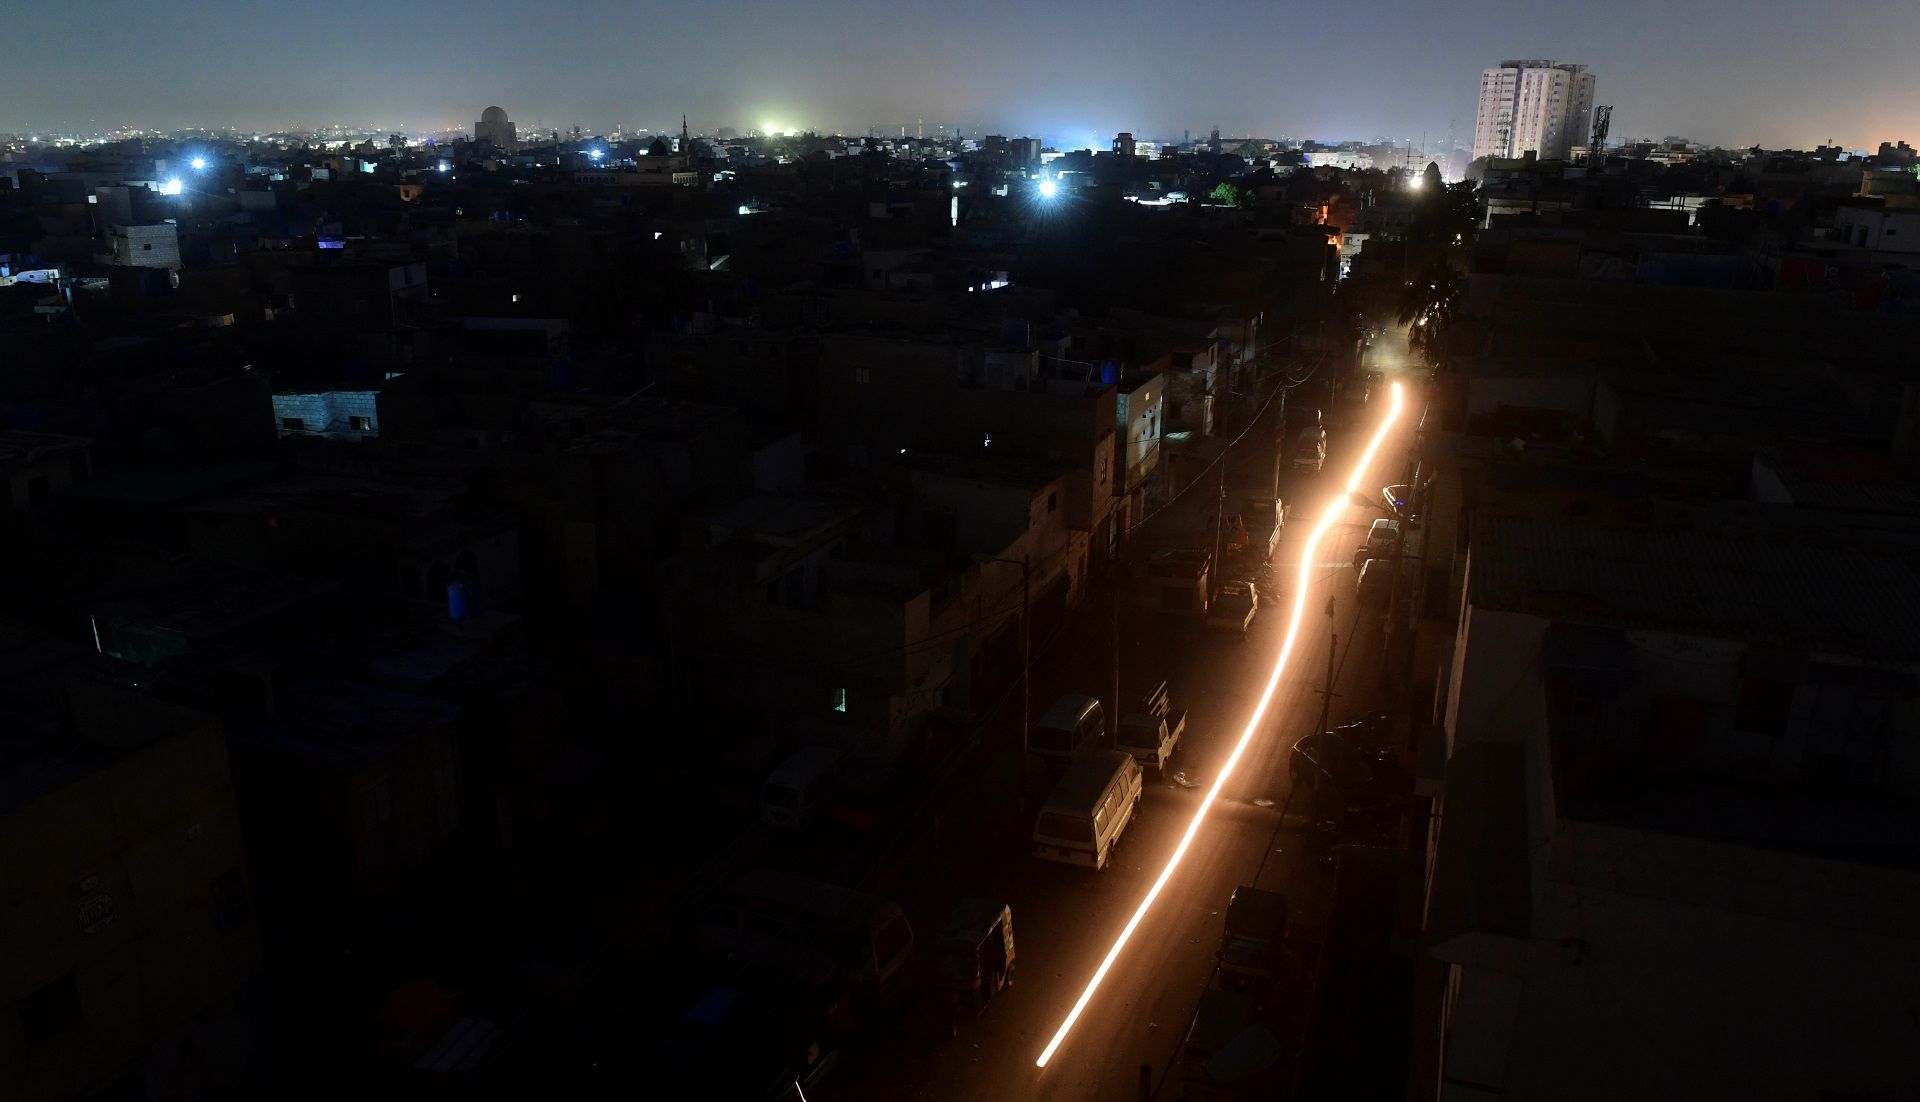 A general view shows Pakistan's port city of Karachi during a power blackout early on January 10, 2021. (Photo by Asif HASSAN / AFP)